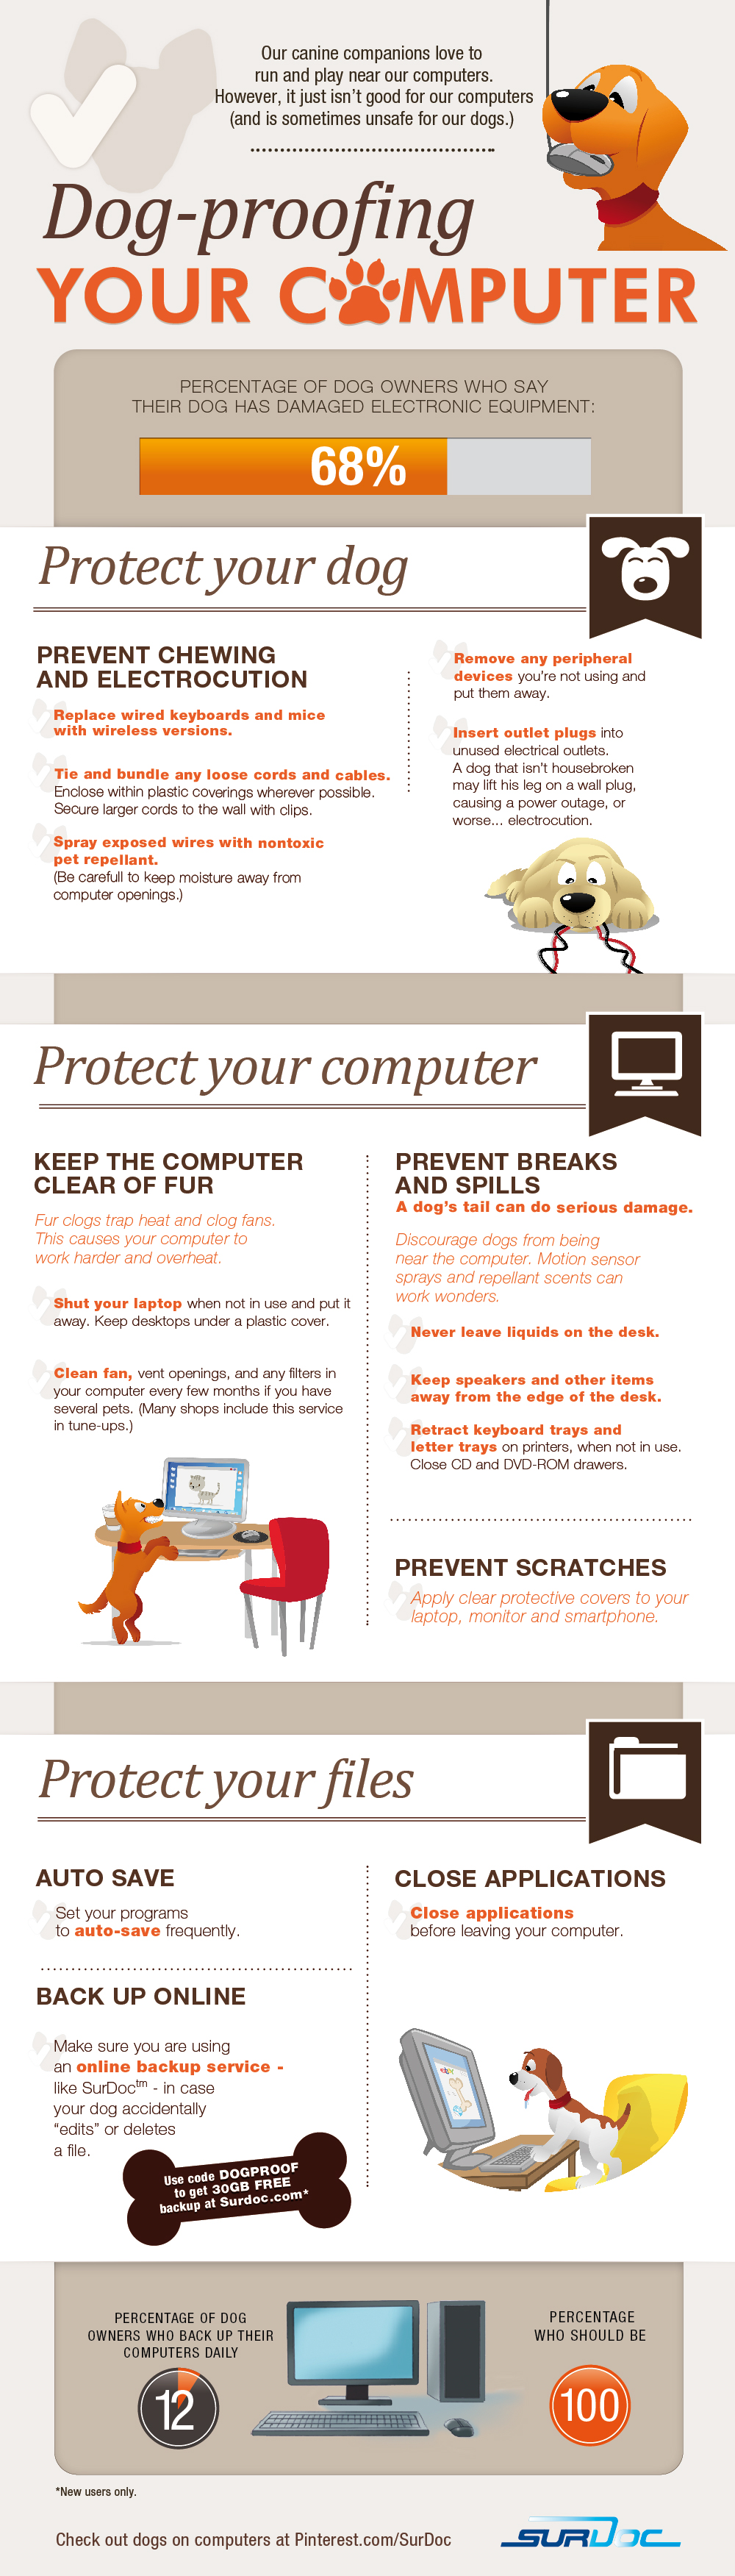 dogproofing-your-computer_5040c6f56eb15